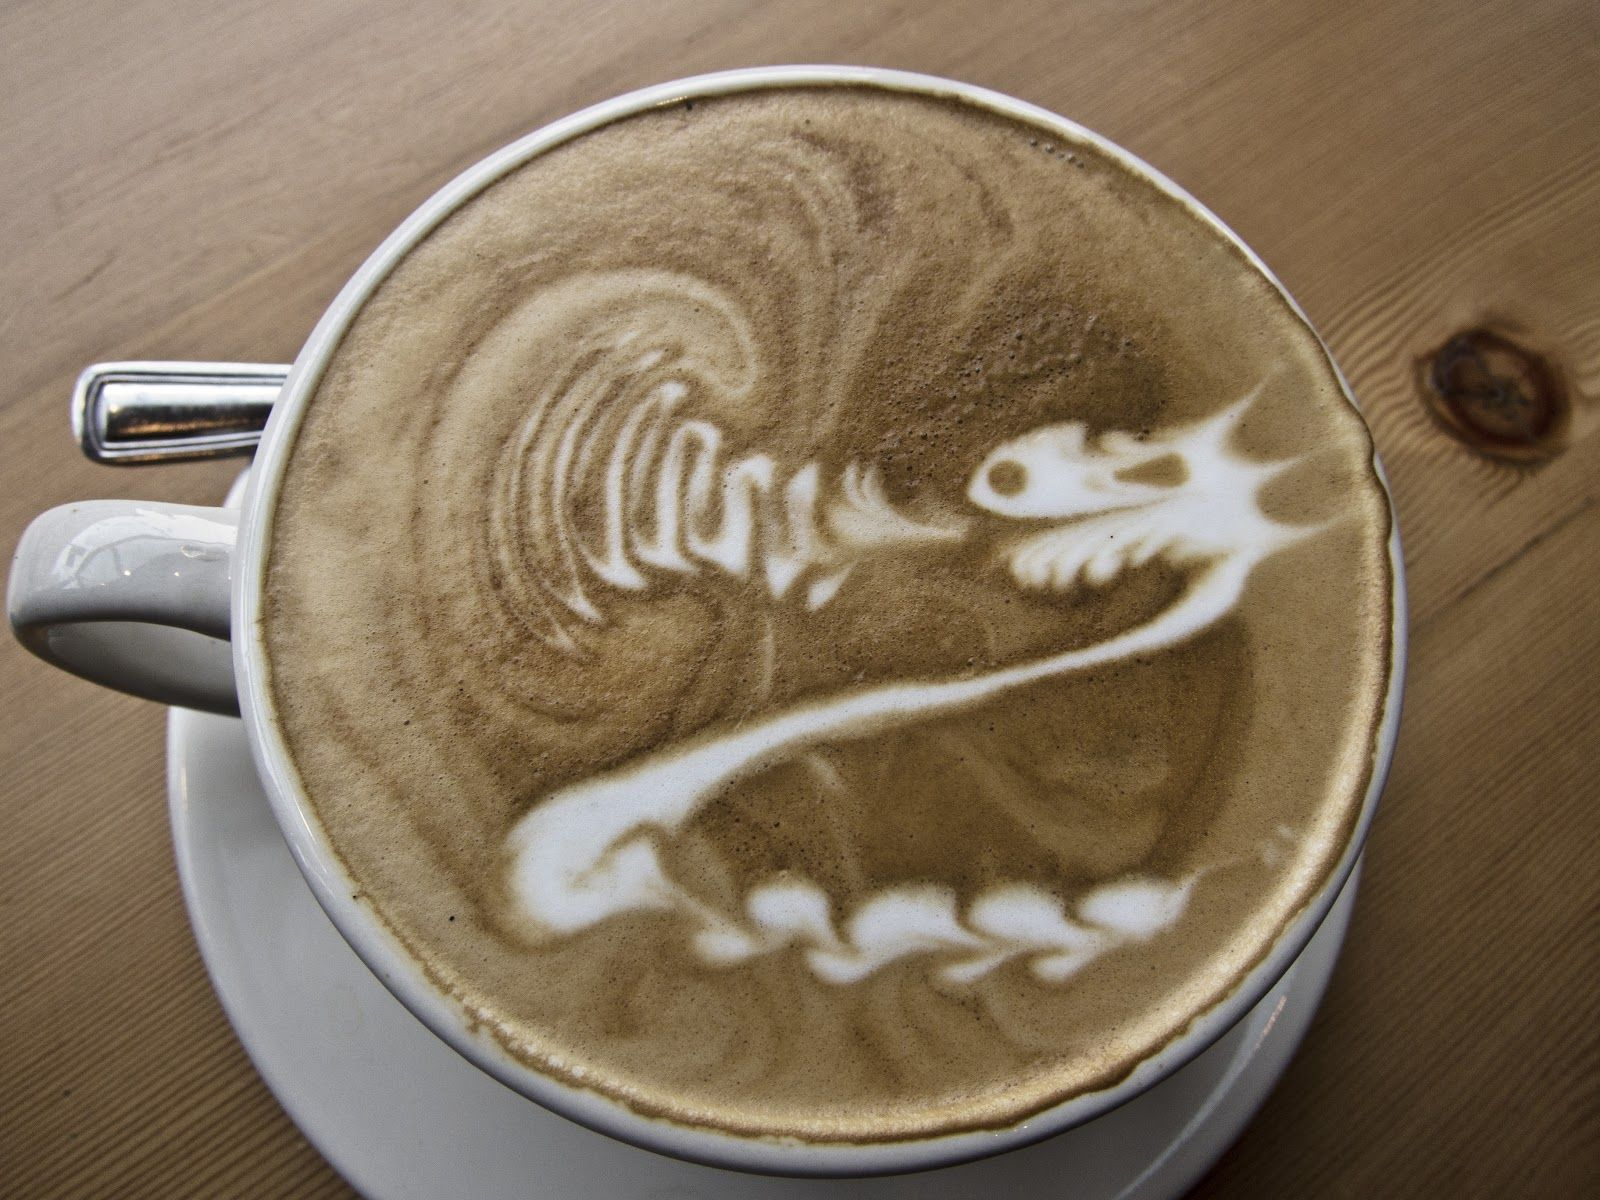 Penis lattes are here to give morning glory a whole new meaning